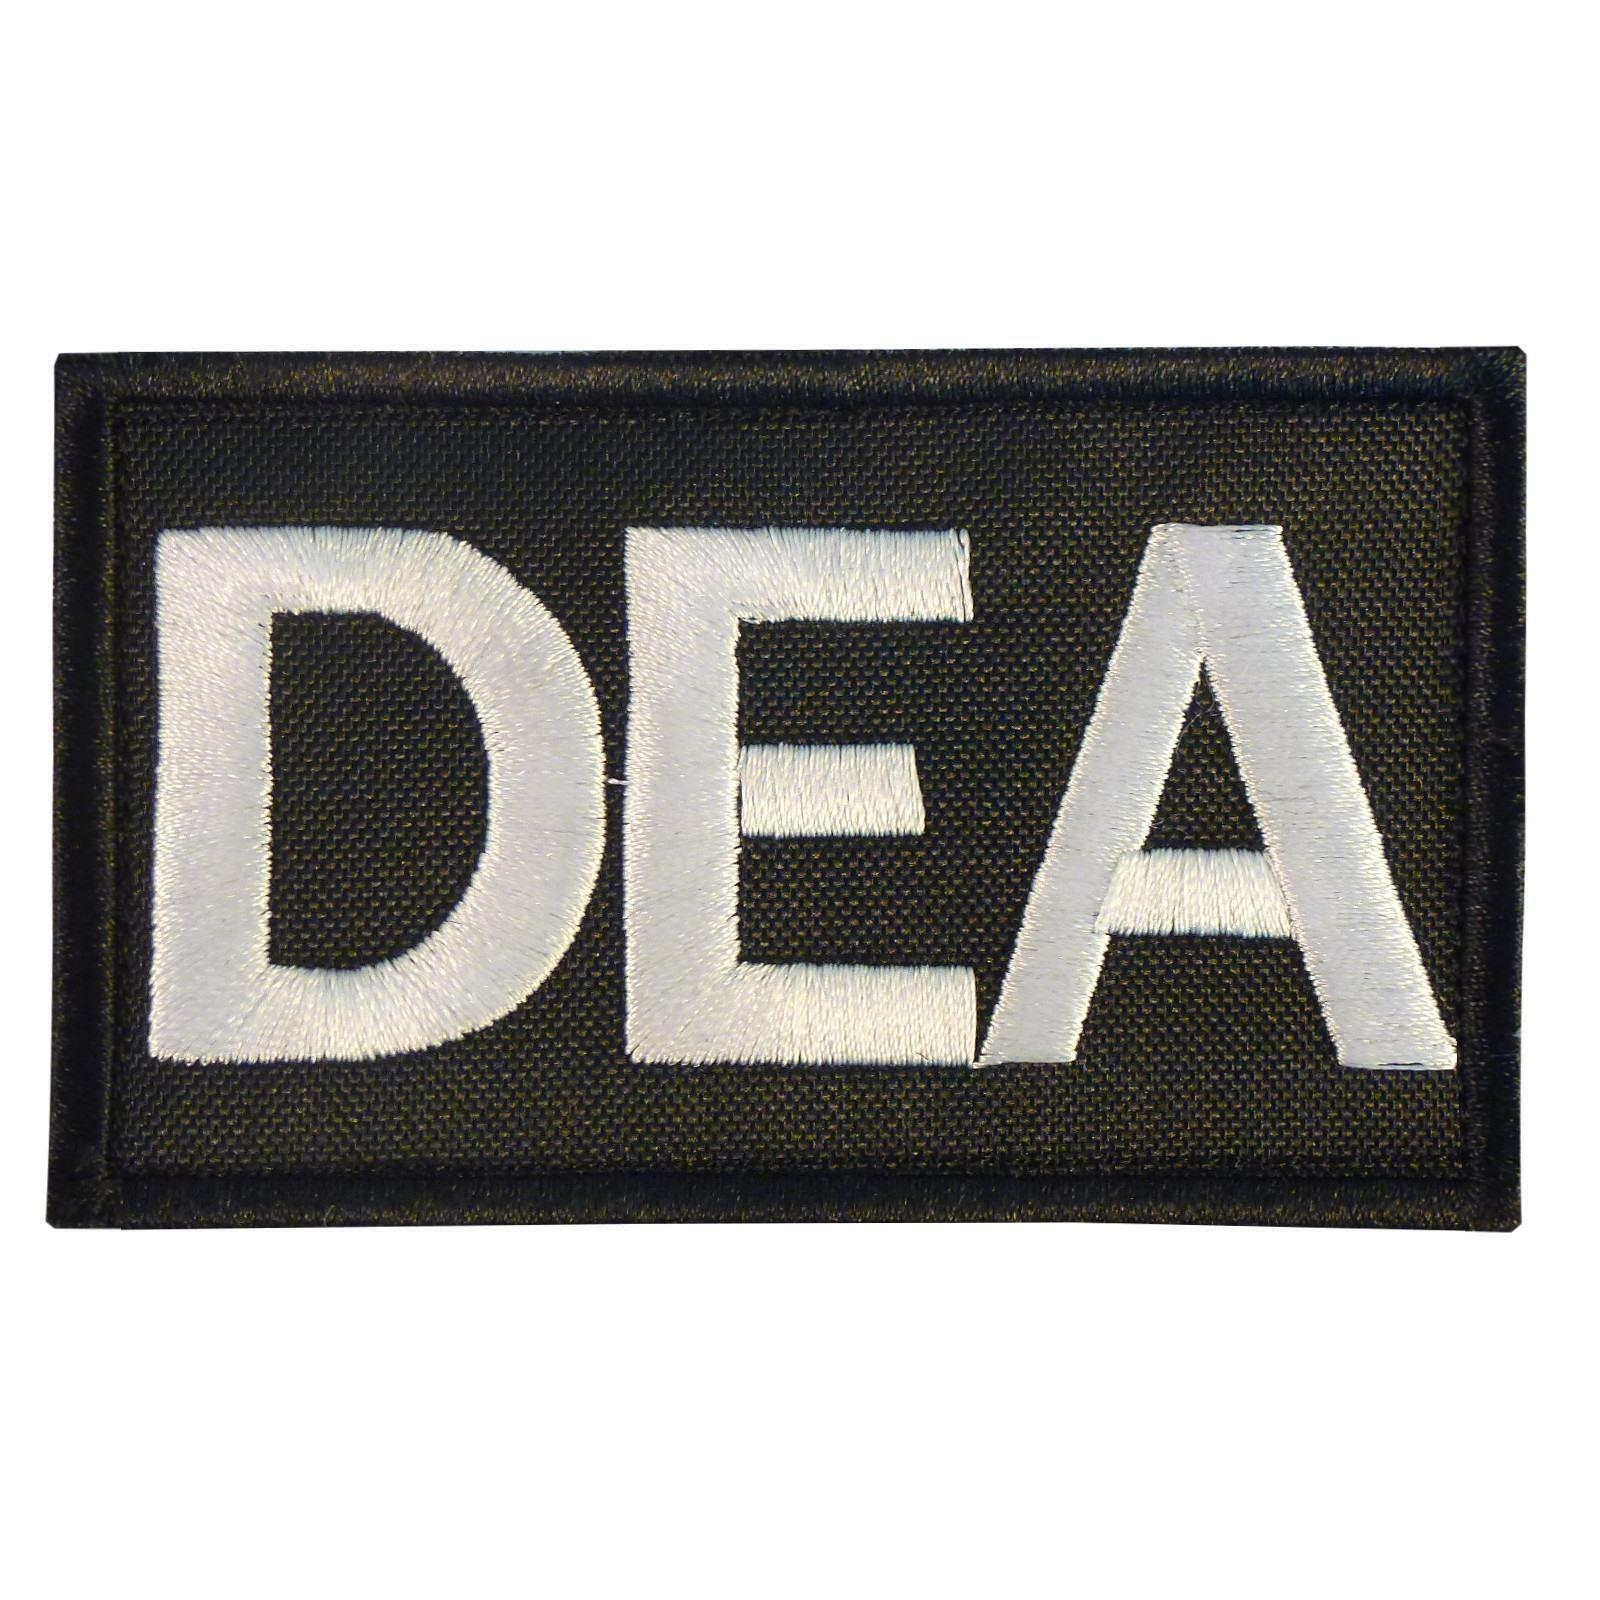 an introduction to the history of federal drug enforcement agency I wish some of my colleagues would stop trying to rewrite history or  prior to  introduction, senator whitehouse and i negotiated with dea,.